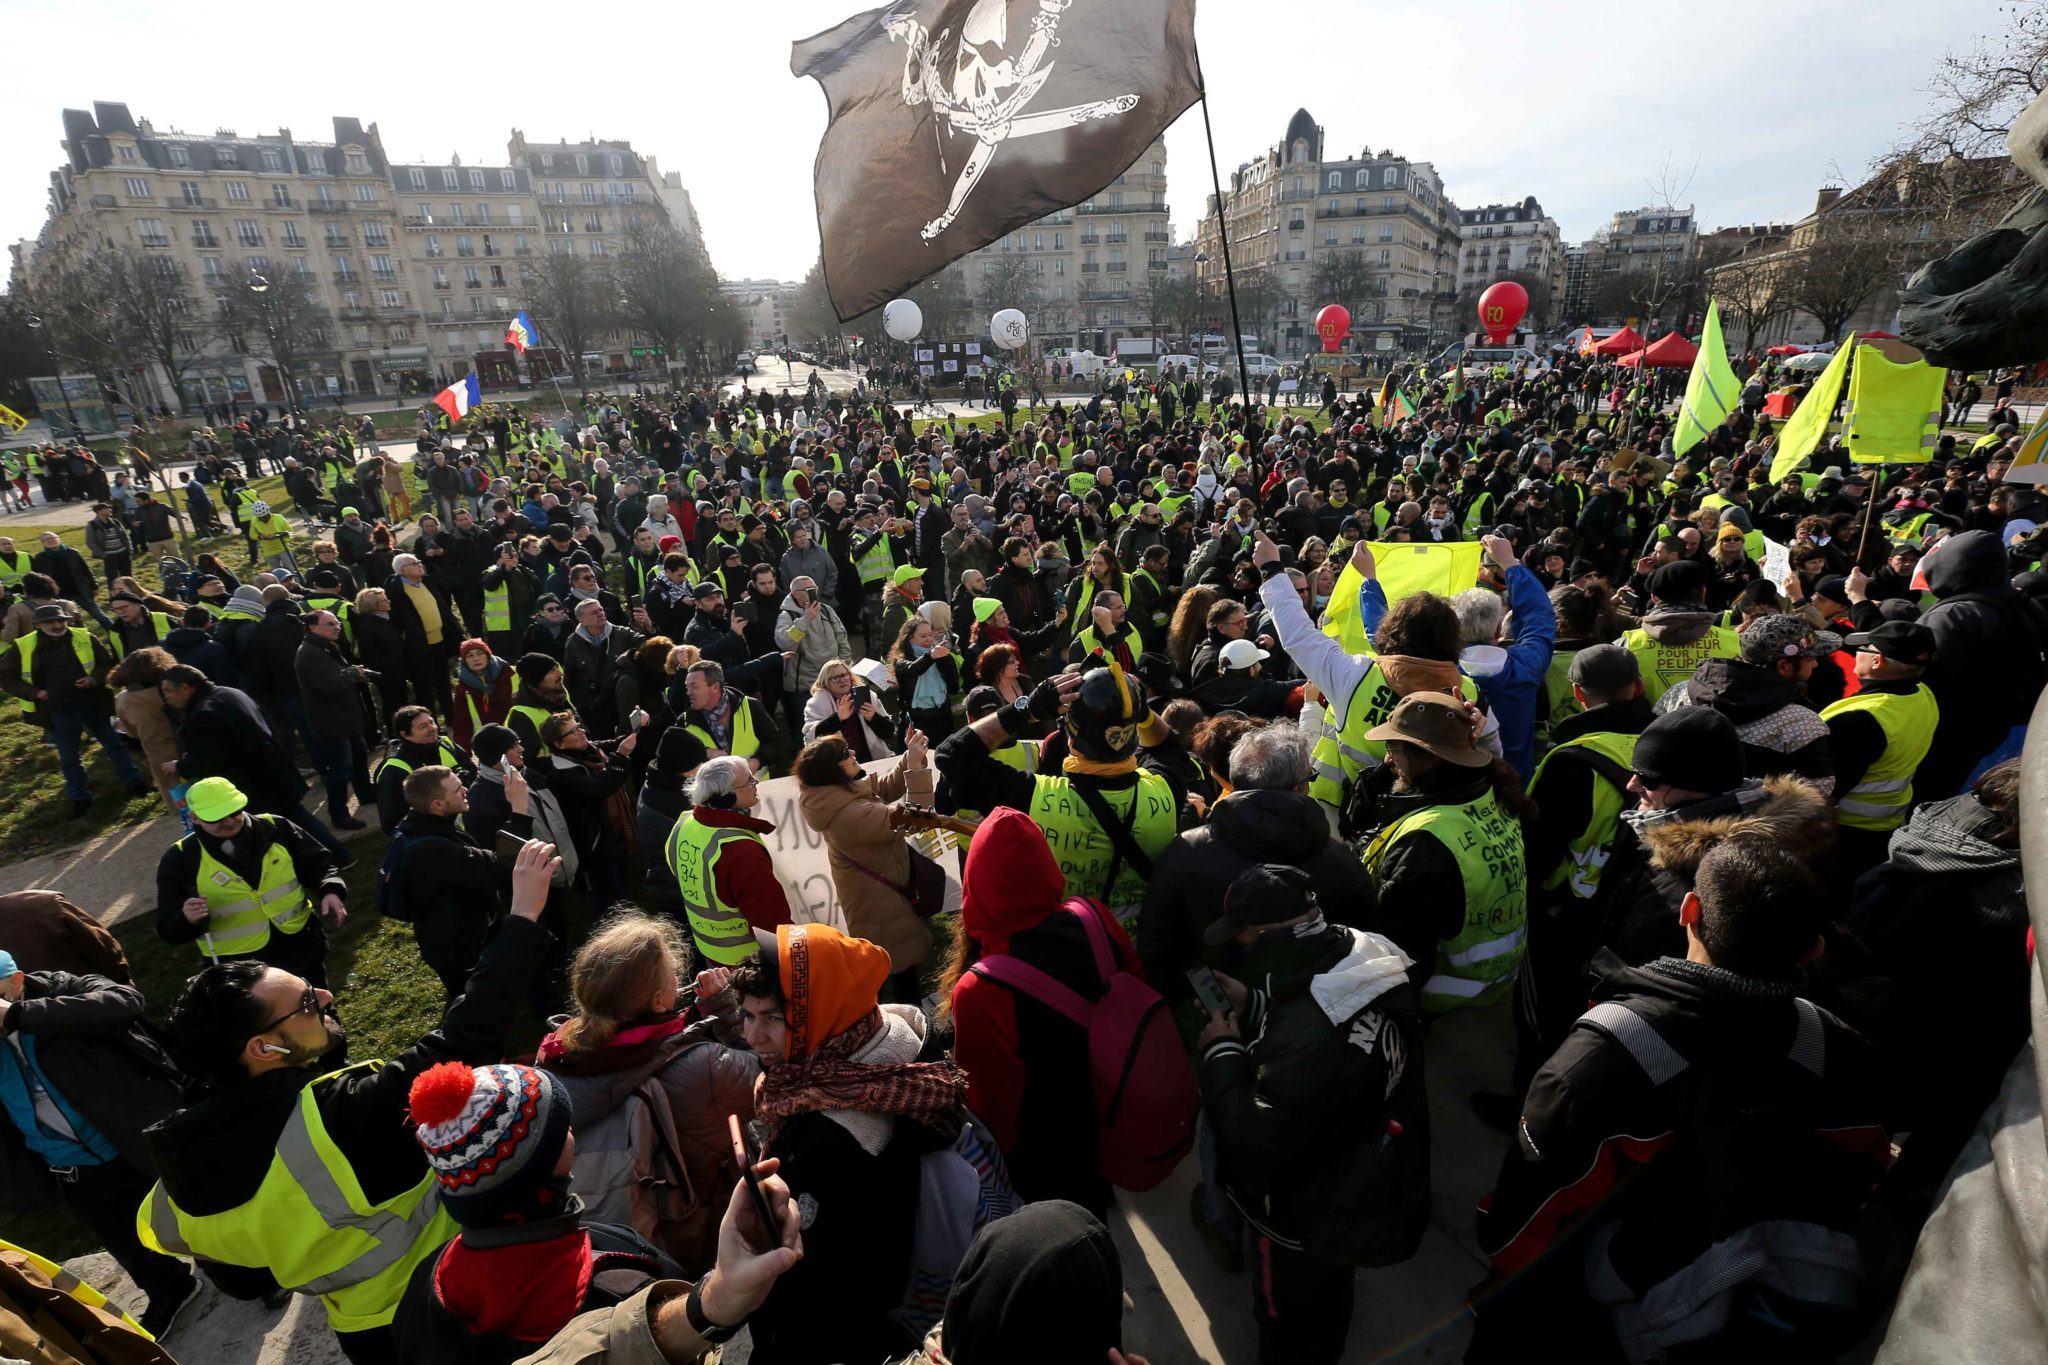 Yellow vests gather in front of the statue of the Nation Square (Place de la Nation) during a demonstration in Paris, on January 11, 2020, as part of a nationwide multi-sector strike against the French government's pensions overhaul. The country has been h